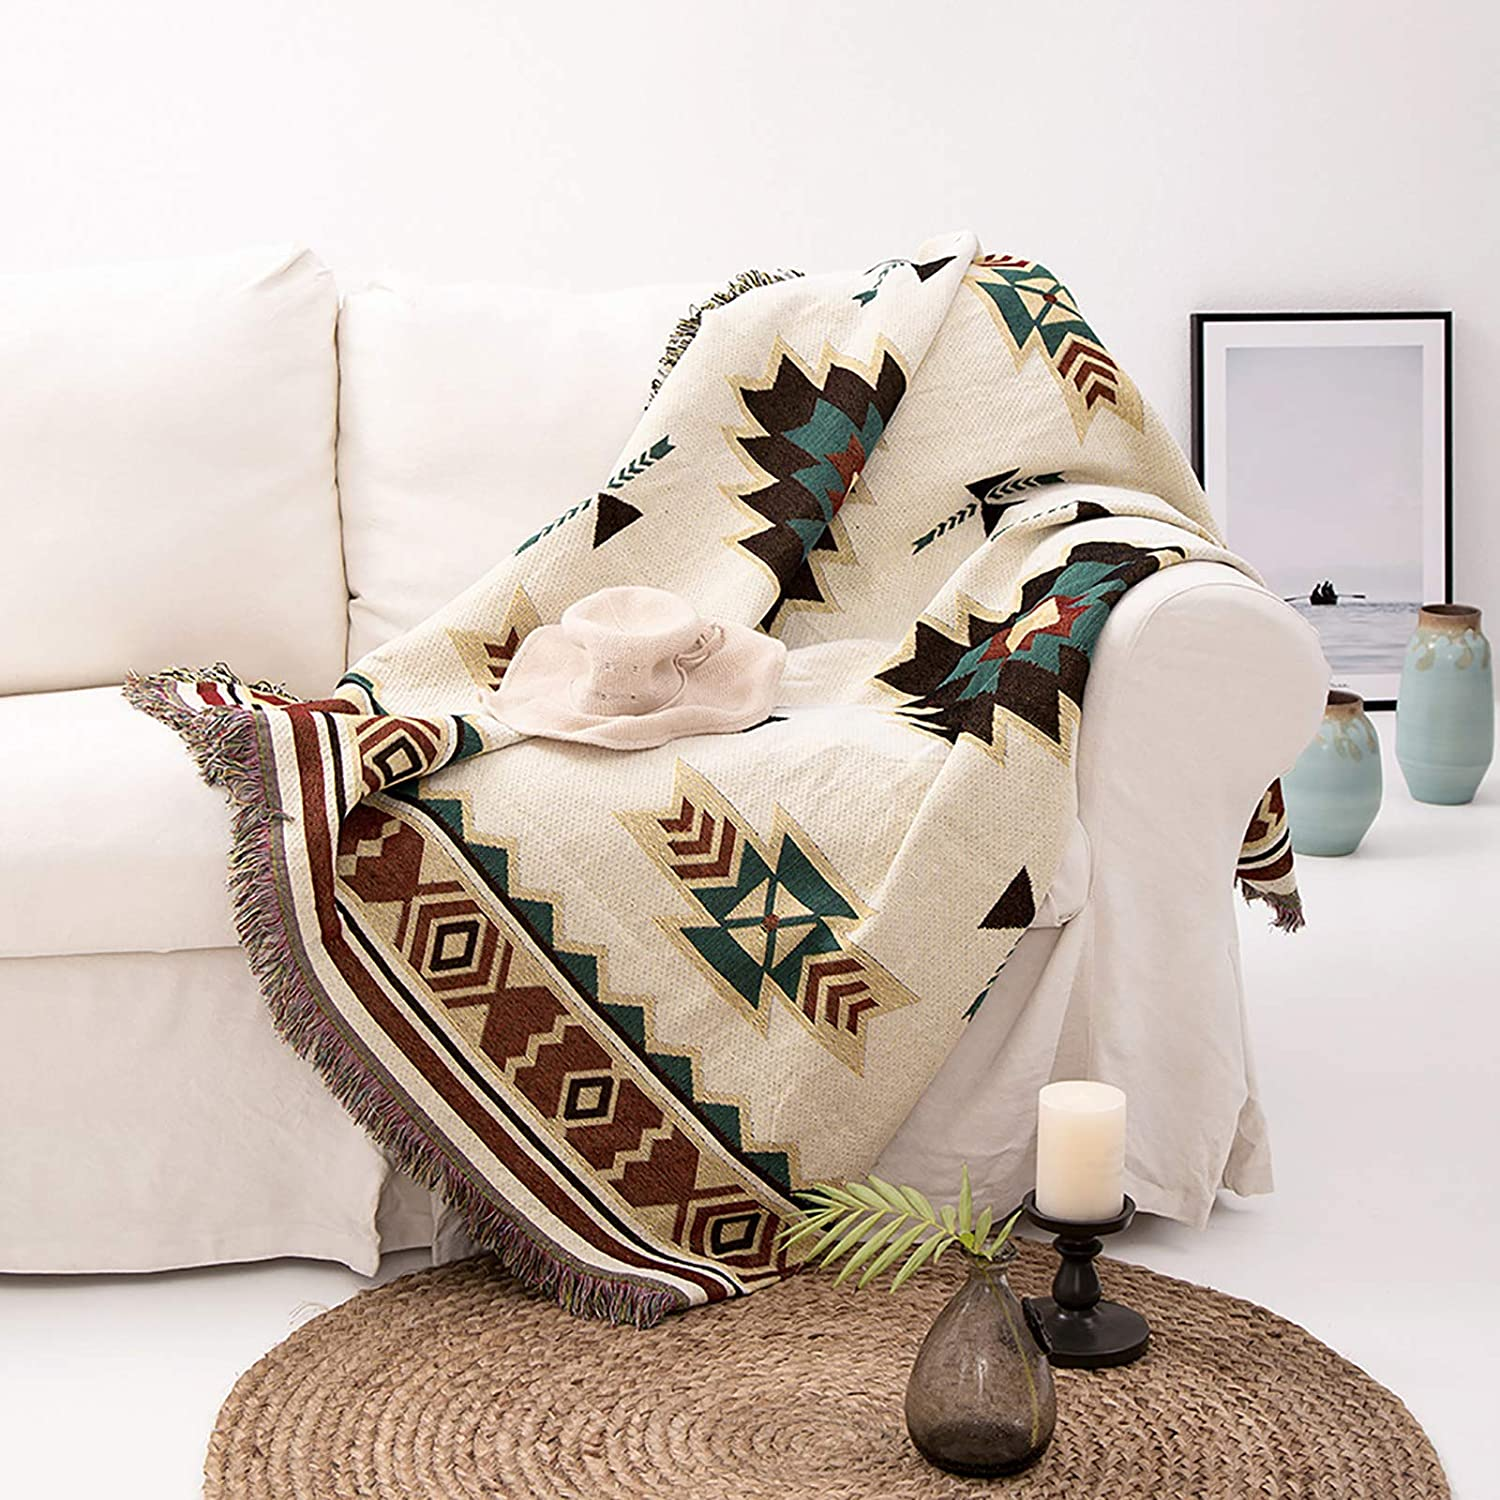 Soft Couch Throw Blankets Southwestern Cotton Woven Knitted Throws for Loveseat Furniture Warm Bed Cover Reversible Towel Multi-Function for Home Office Travel(70x90 inch)-L